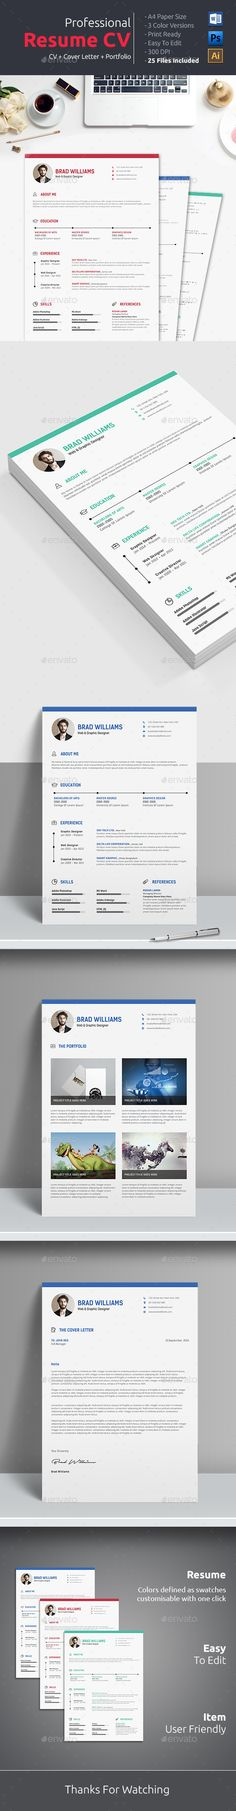 Resume Word Resume words, Resume cv and Cv template - resume cv definition